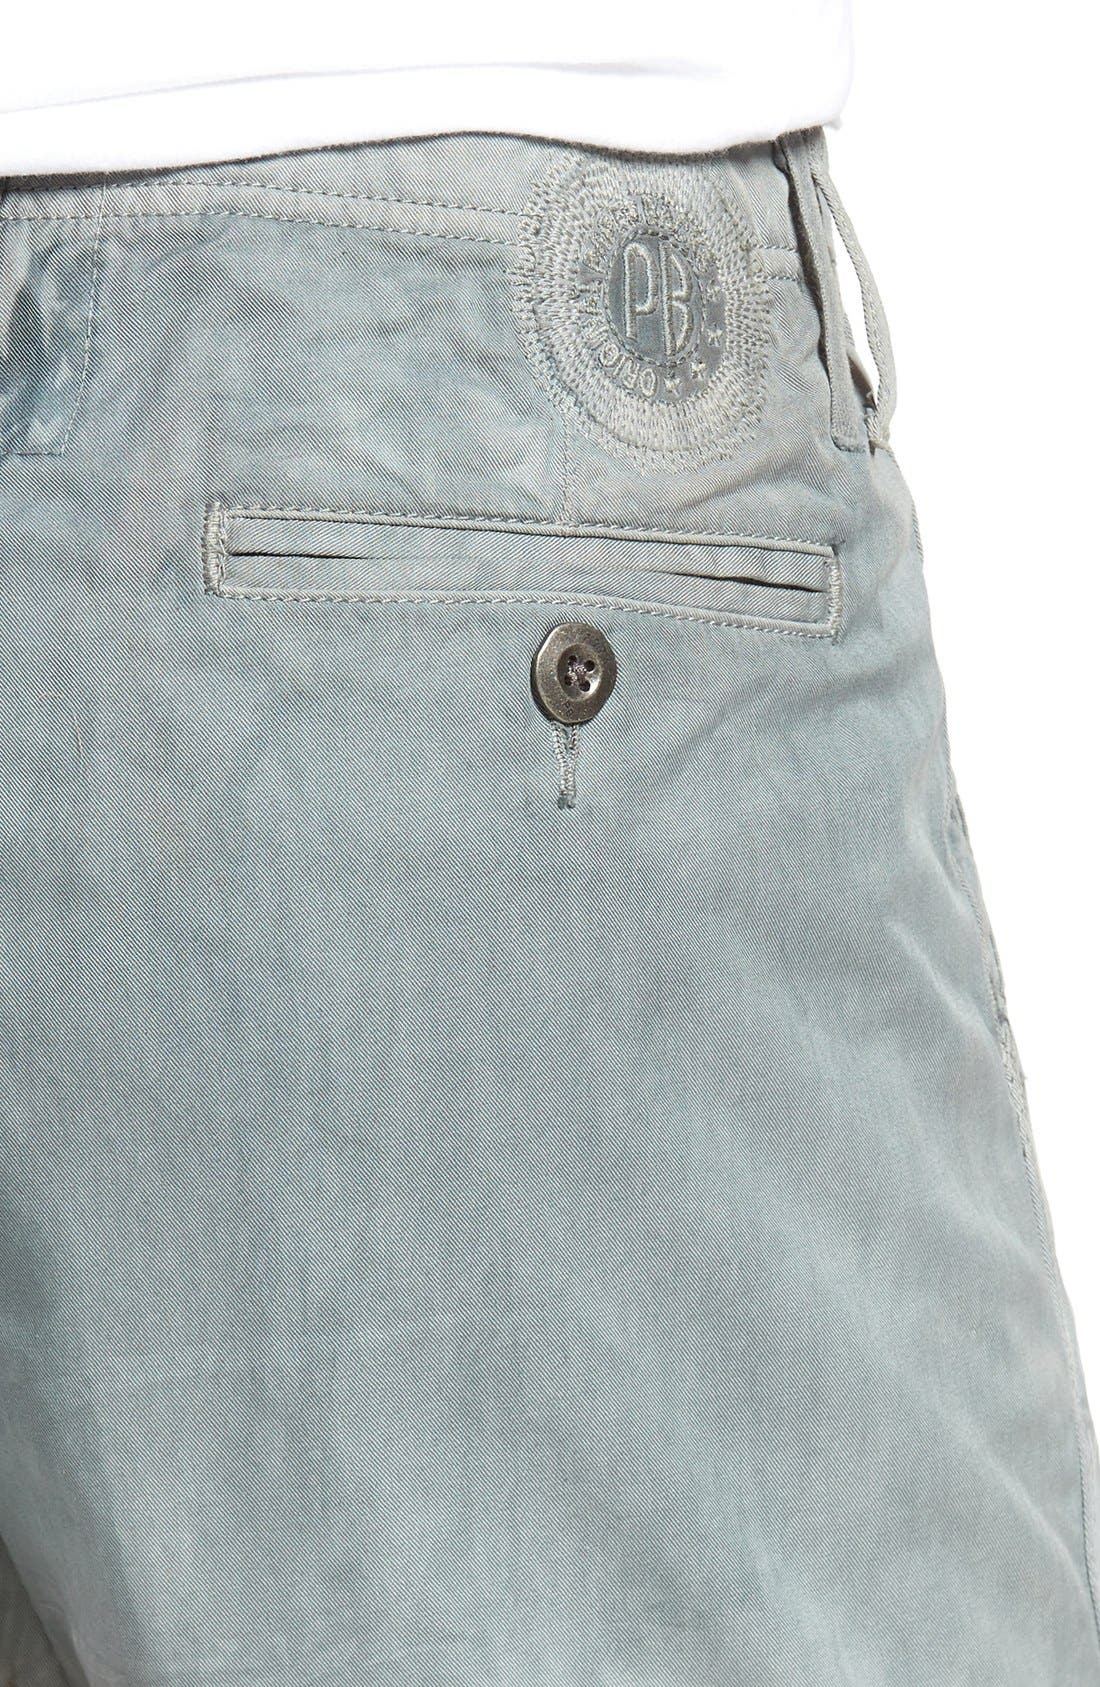 'Napa' Chino Shorts,                             Alternate thumbnail 69, color,